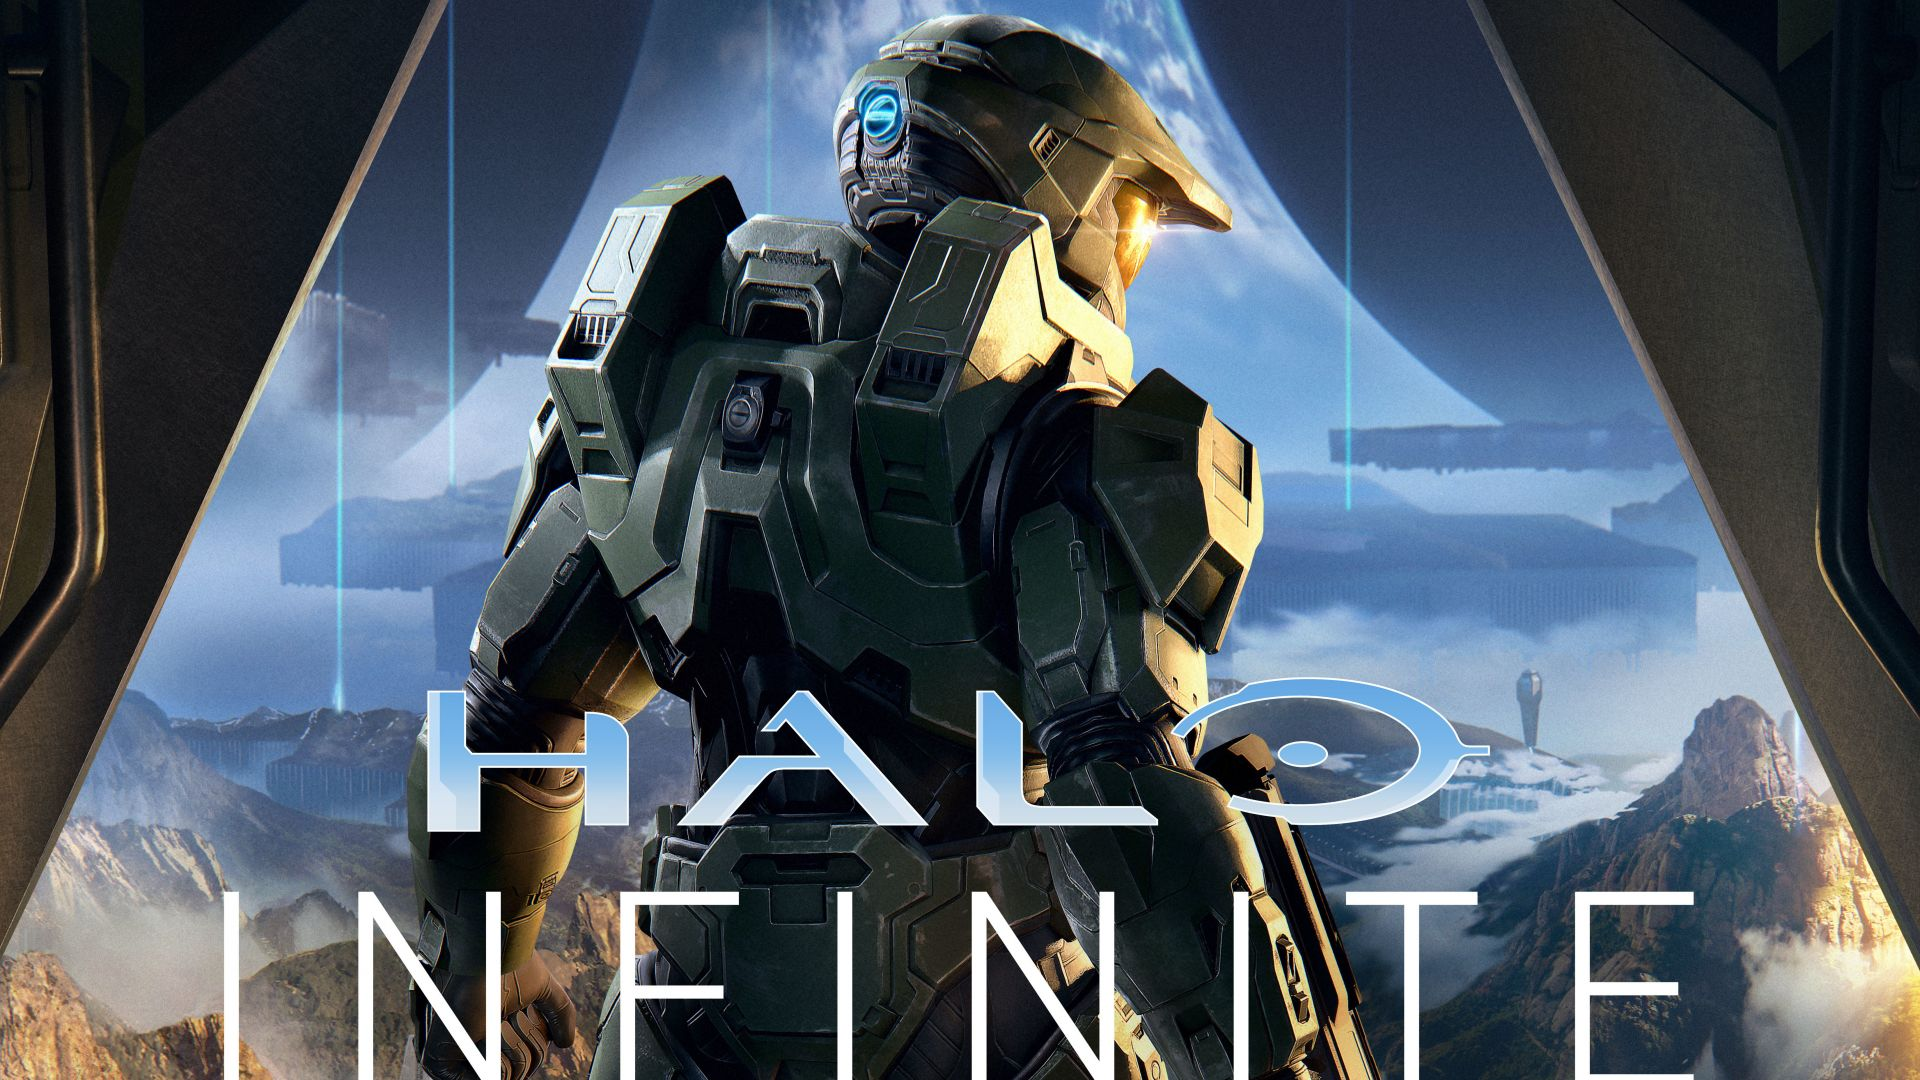 Halo Infinite, E3 2019, poster, 5K (horizontal)